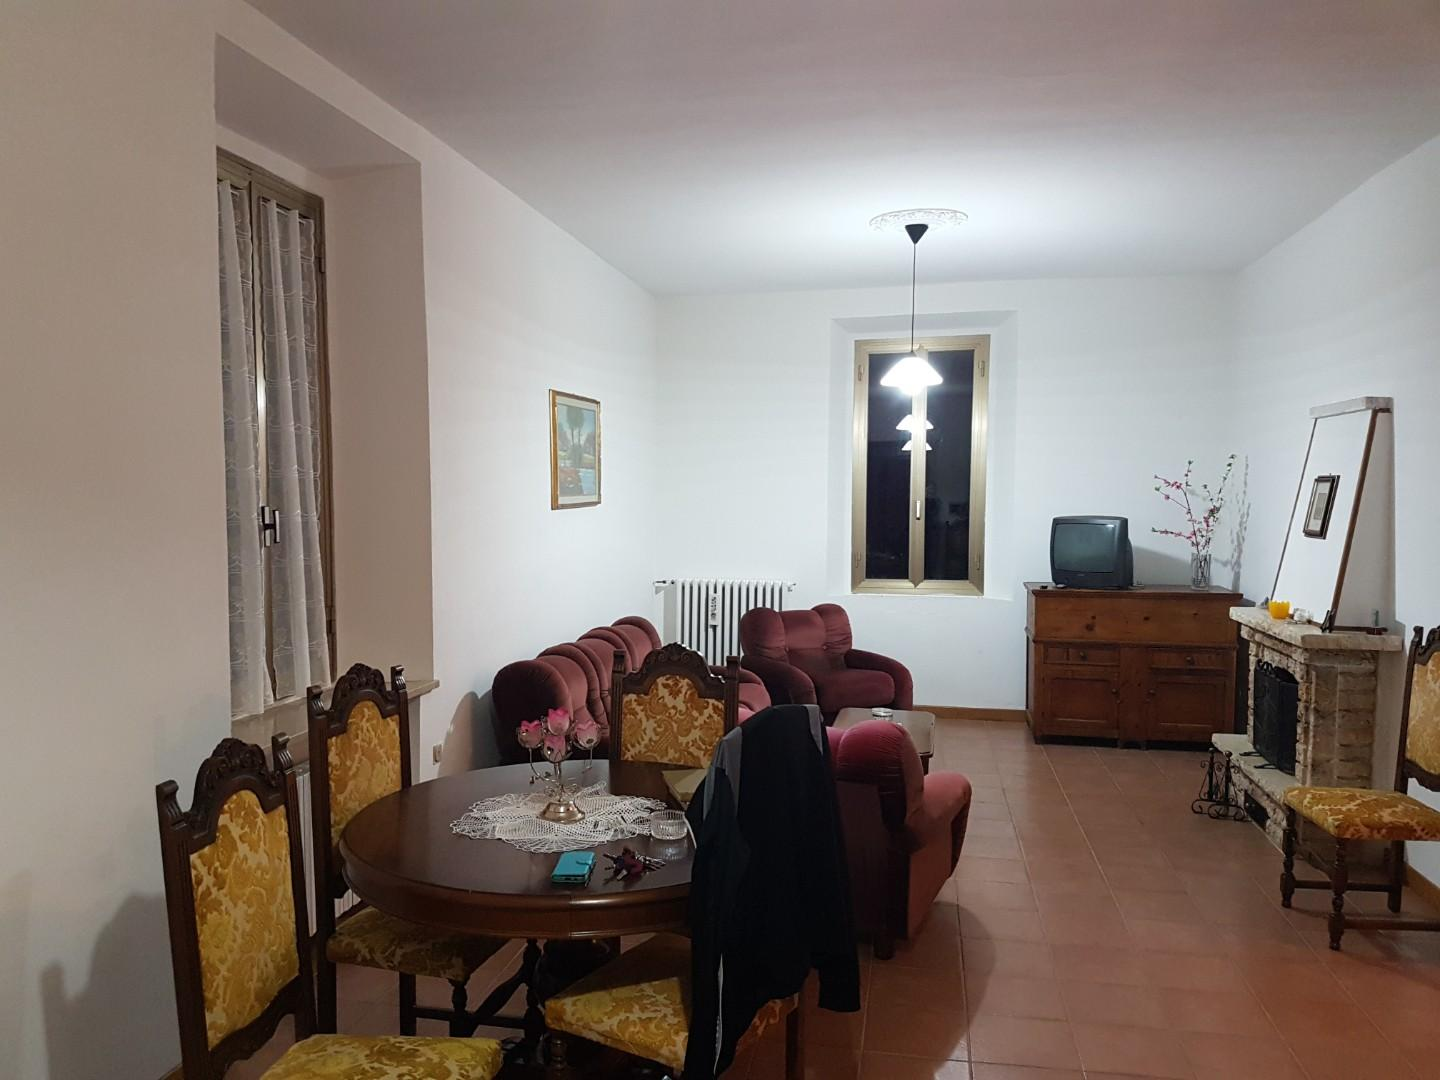 Apartment for rent in Monticiano (SI)